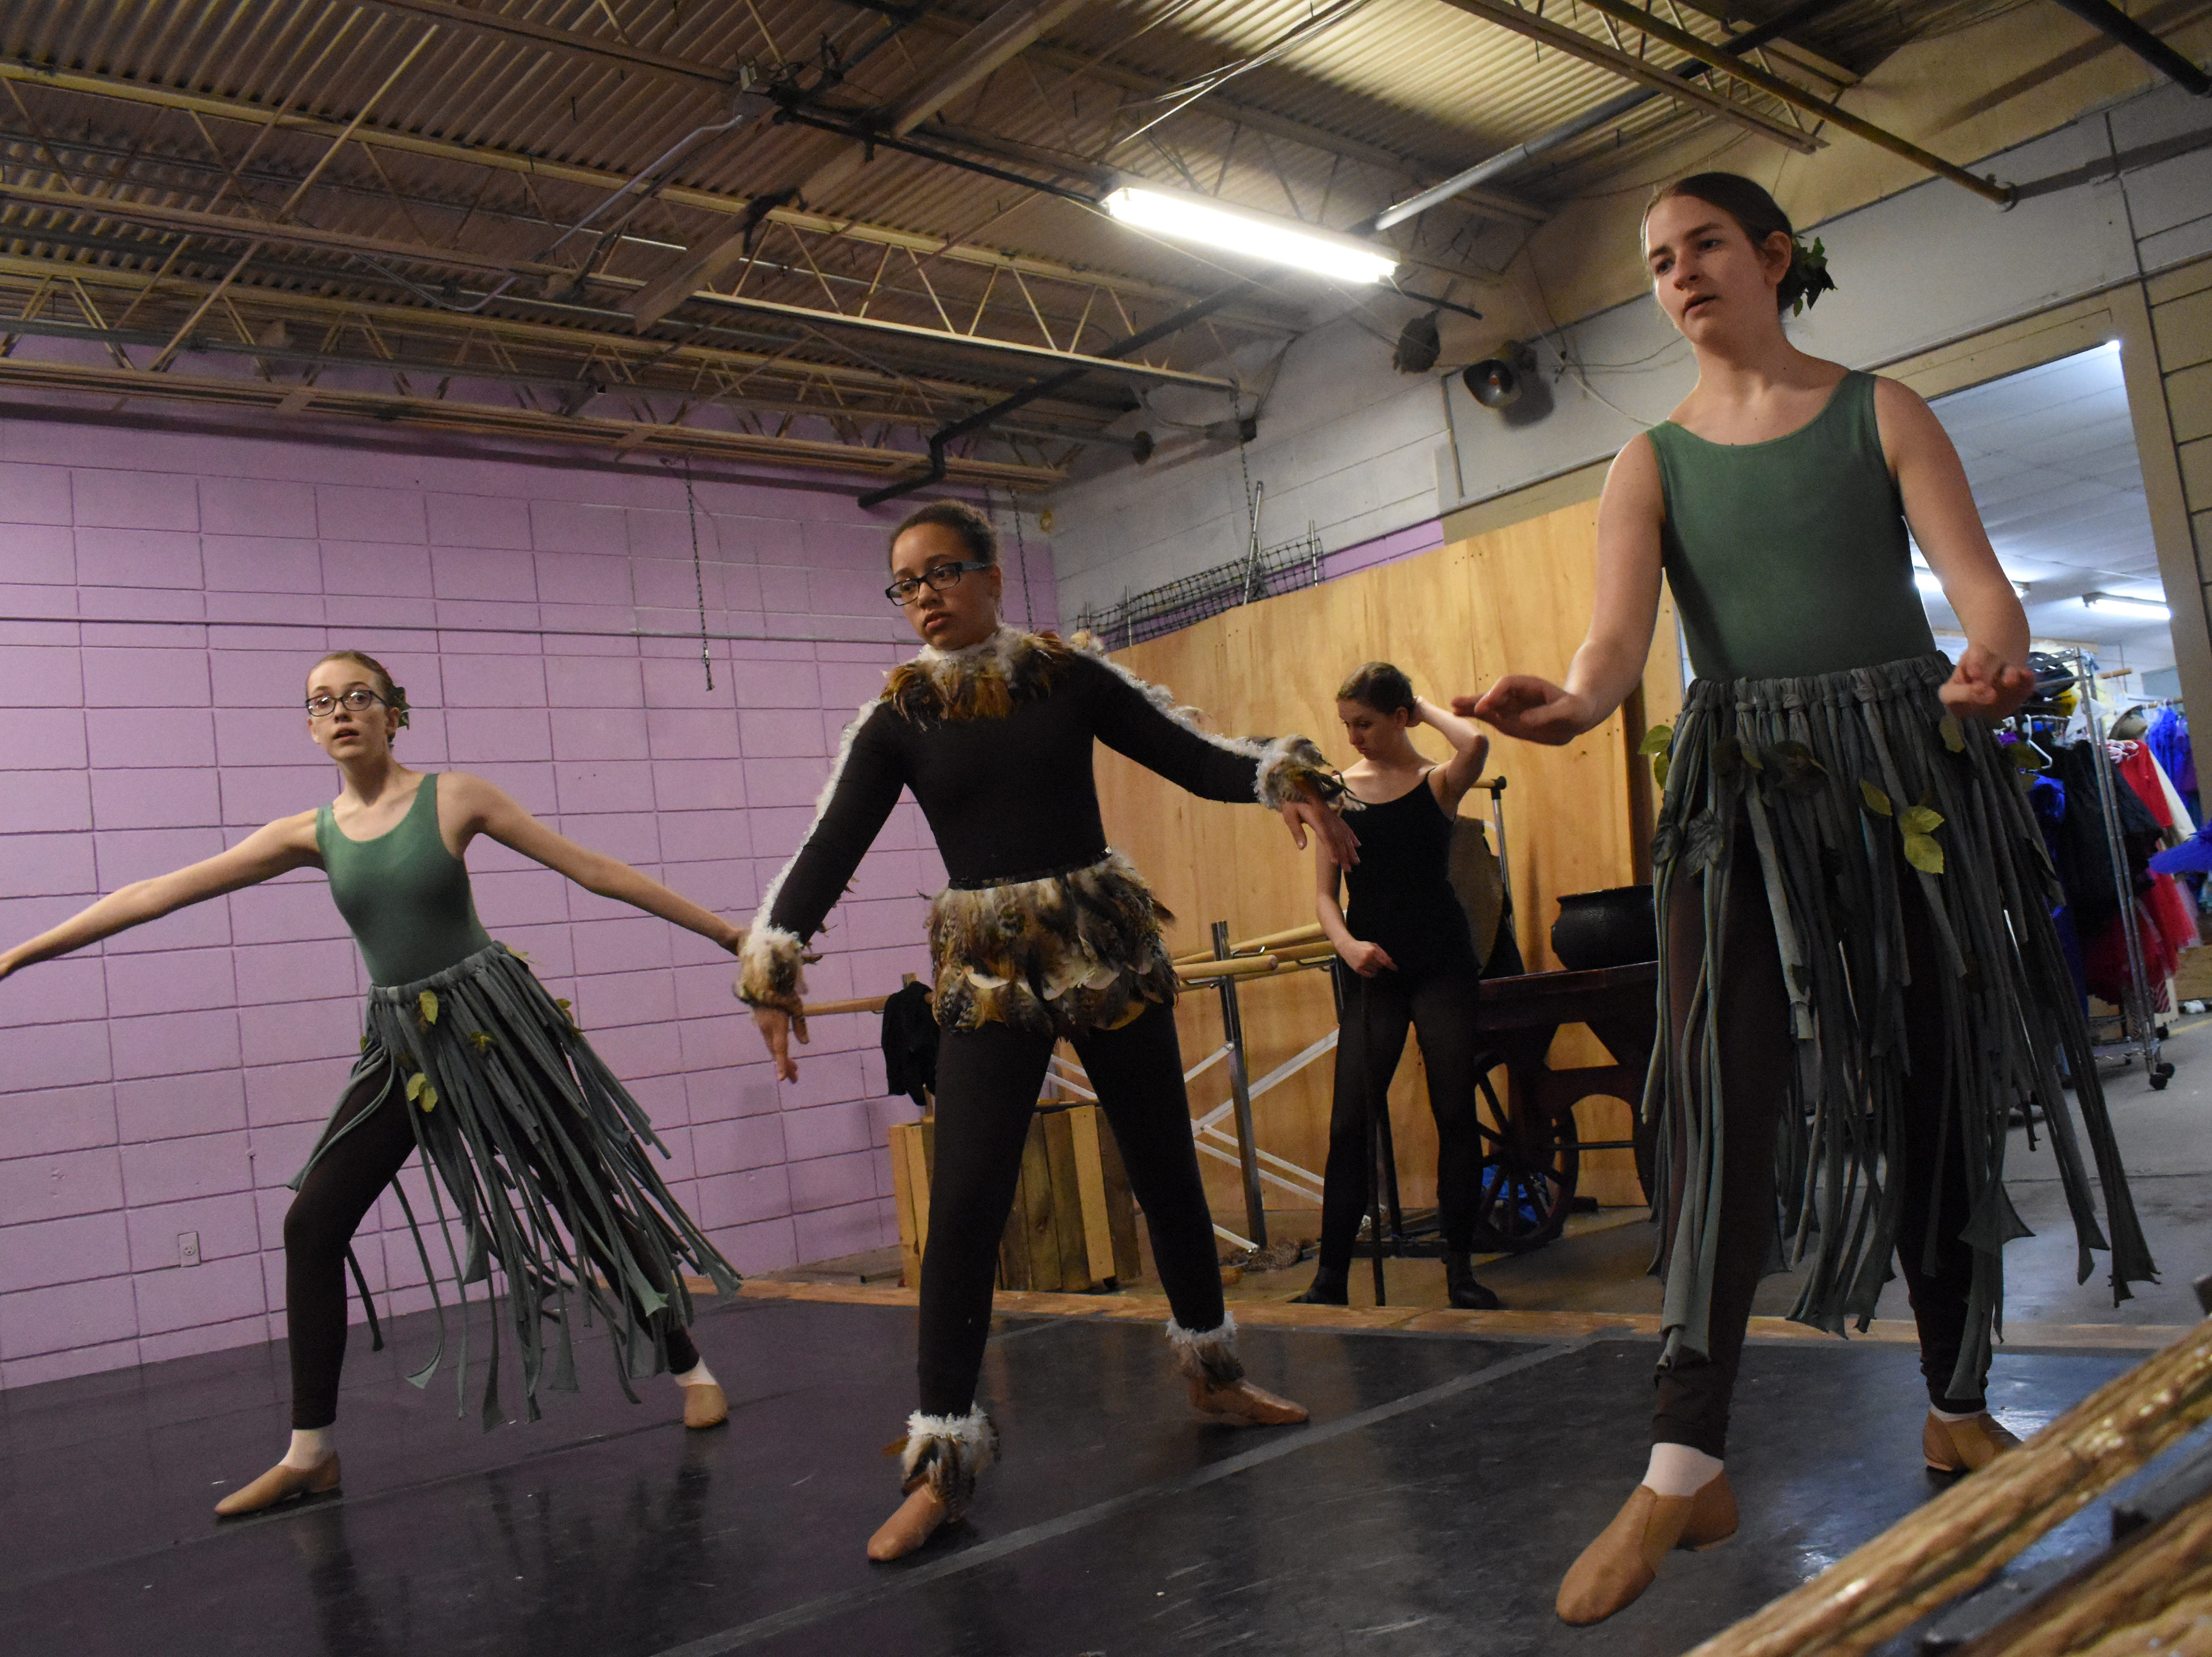 """The Red River Dance Theatre Company will present their spring ballet, """"Snow White and Seven Dwarfs"""" at 7 p.m. Friday, March 29, 2019 and Saturday, March 30 and at 2 p.m. Sunday, March 31. The ballet will be at the Kress Theater in downtown Alexandria.ÊTickets are $10 for children and seniors and adult tickets are $13. Tickets can be purchased at theÊwww.redriverdance.org.""""Snow White and the Seven Dwarfs"""" is a fairy about a young princess, Snow White. Her evil step-mother, the Queen, is jealous of Snow White beauty and becomes angry after her magic mirror declares Snow White """"fairest in the land."""" The Queen orders a huntsman to kill Snow White. The huntsman takes pity on Snow White and lets her go. Snow White is sent into the forest where she is found by seven dwarfs with whom she lives. The Queen later finds outÊthat Snow White is still alive and then plots to kill Snow WhiteÊherself."""